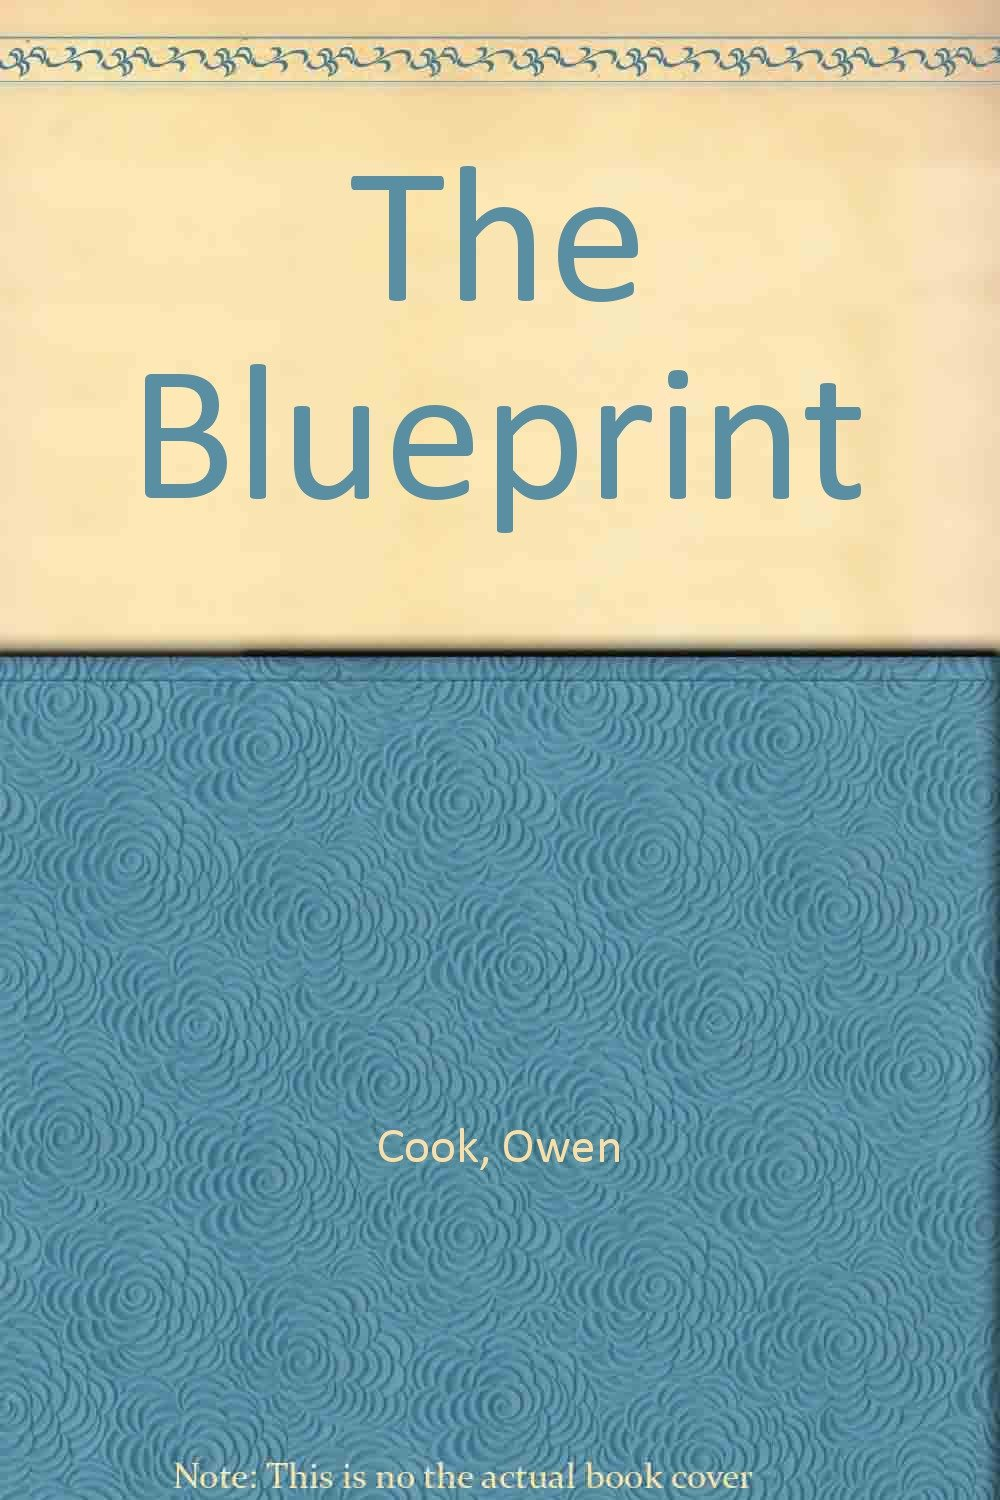 The blueprint amazon owen cook 9781846050961 books malvernweather Gallery